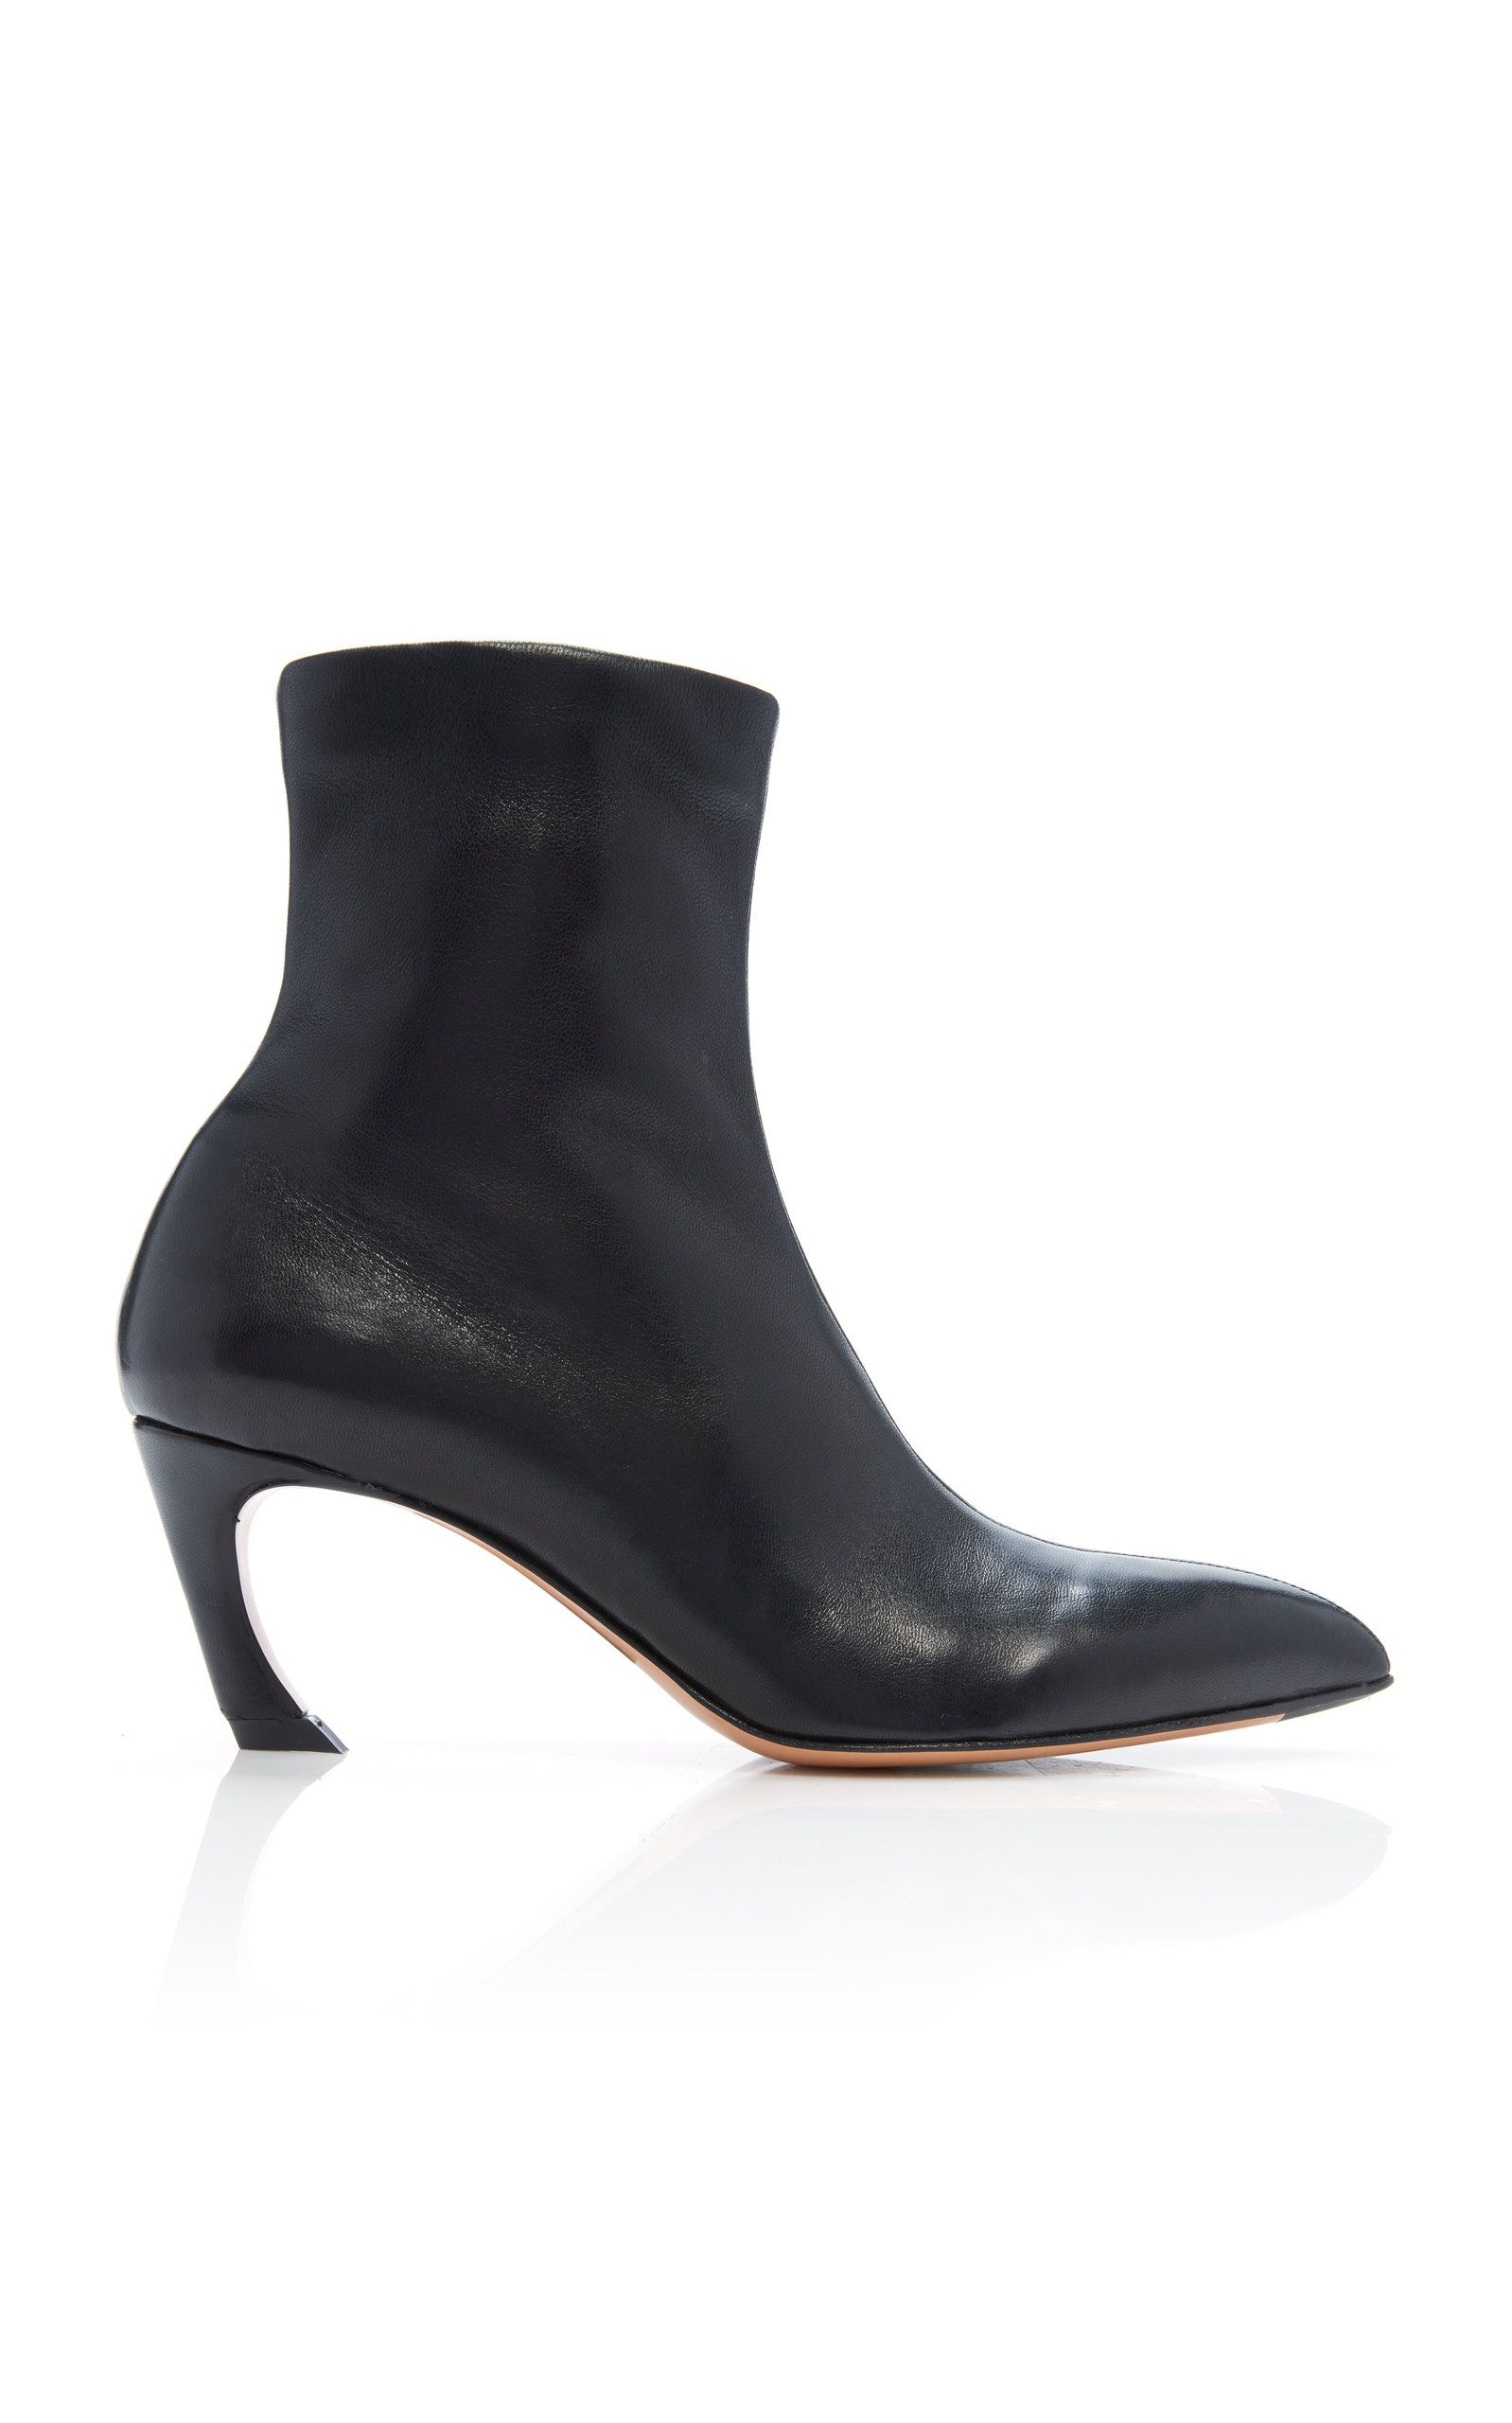 Shop the Look: Bilbo Leather Ankle Boots